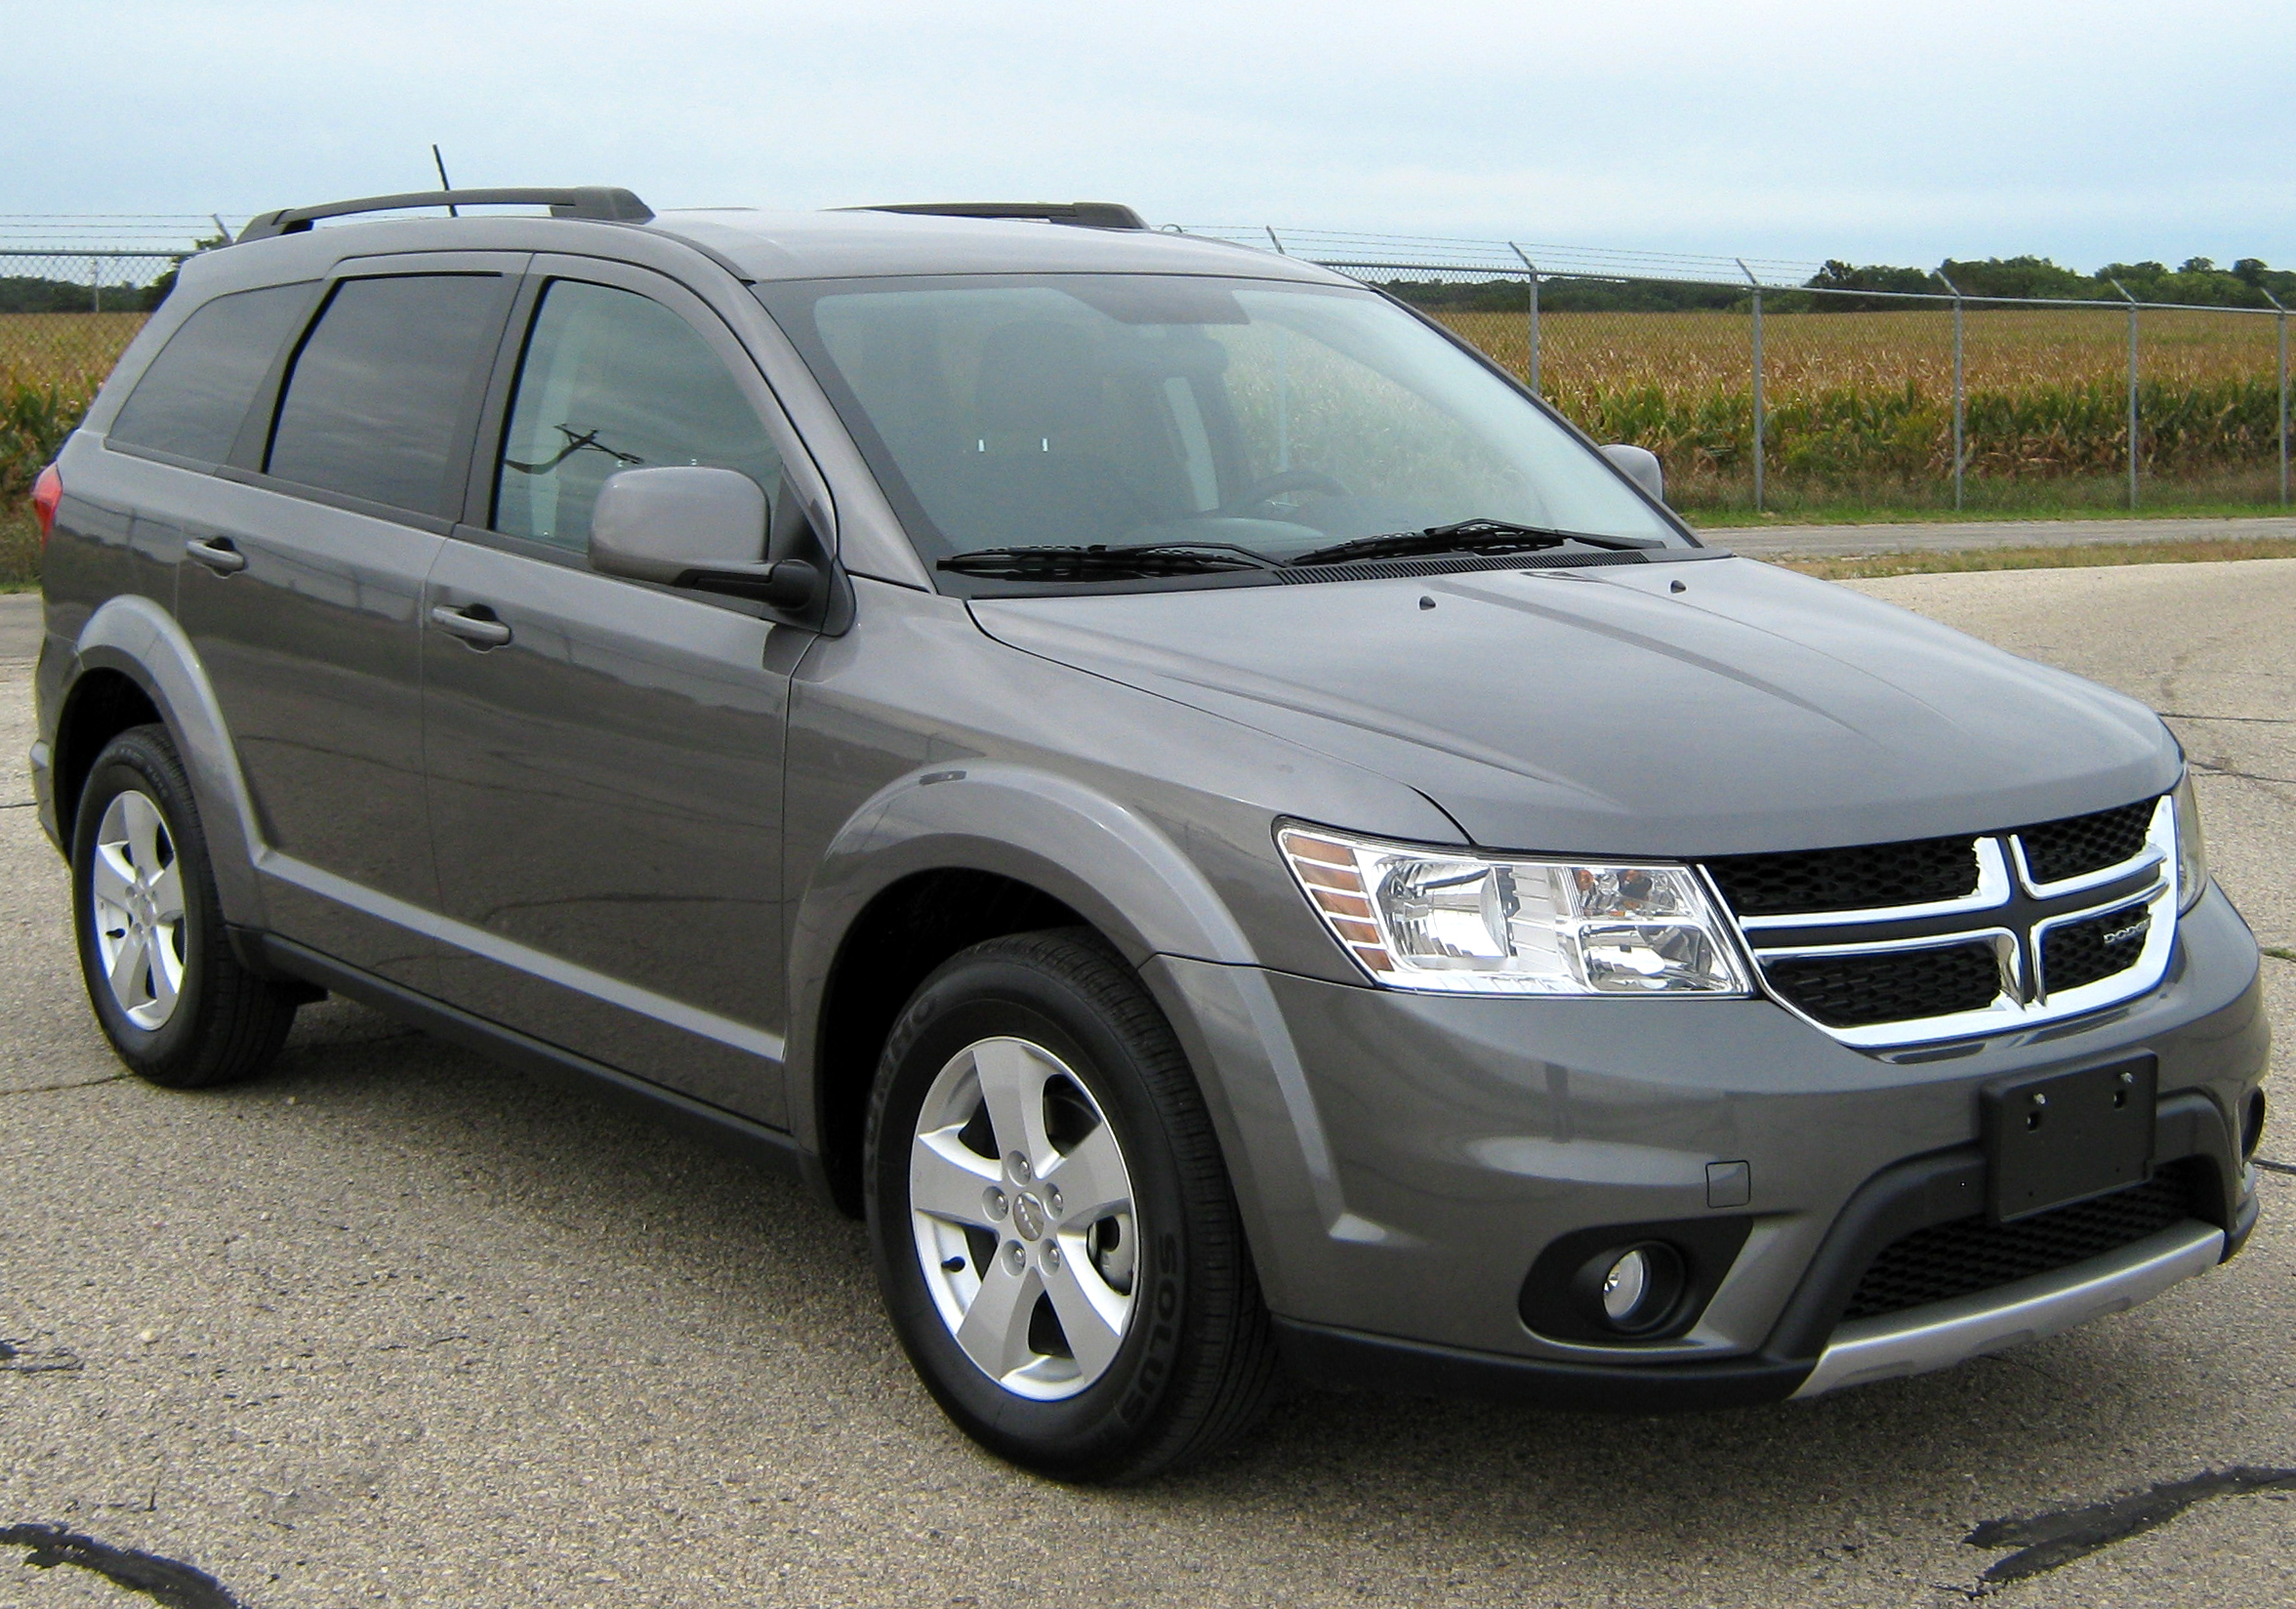 file 2012 dodge journey nhtsa wikimedia commons. Black Bedroom Furniture Sets. Home Design Ideas